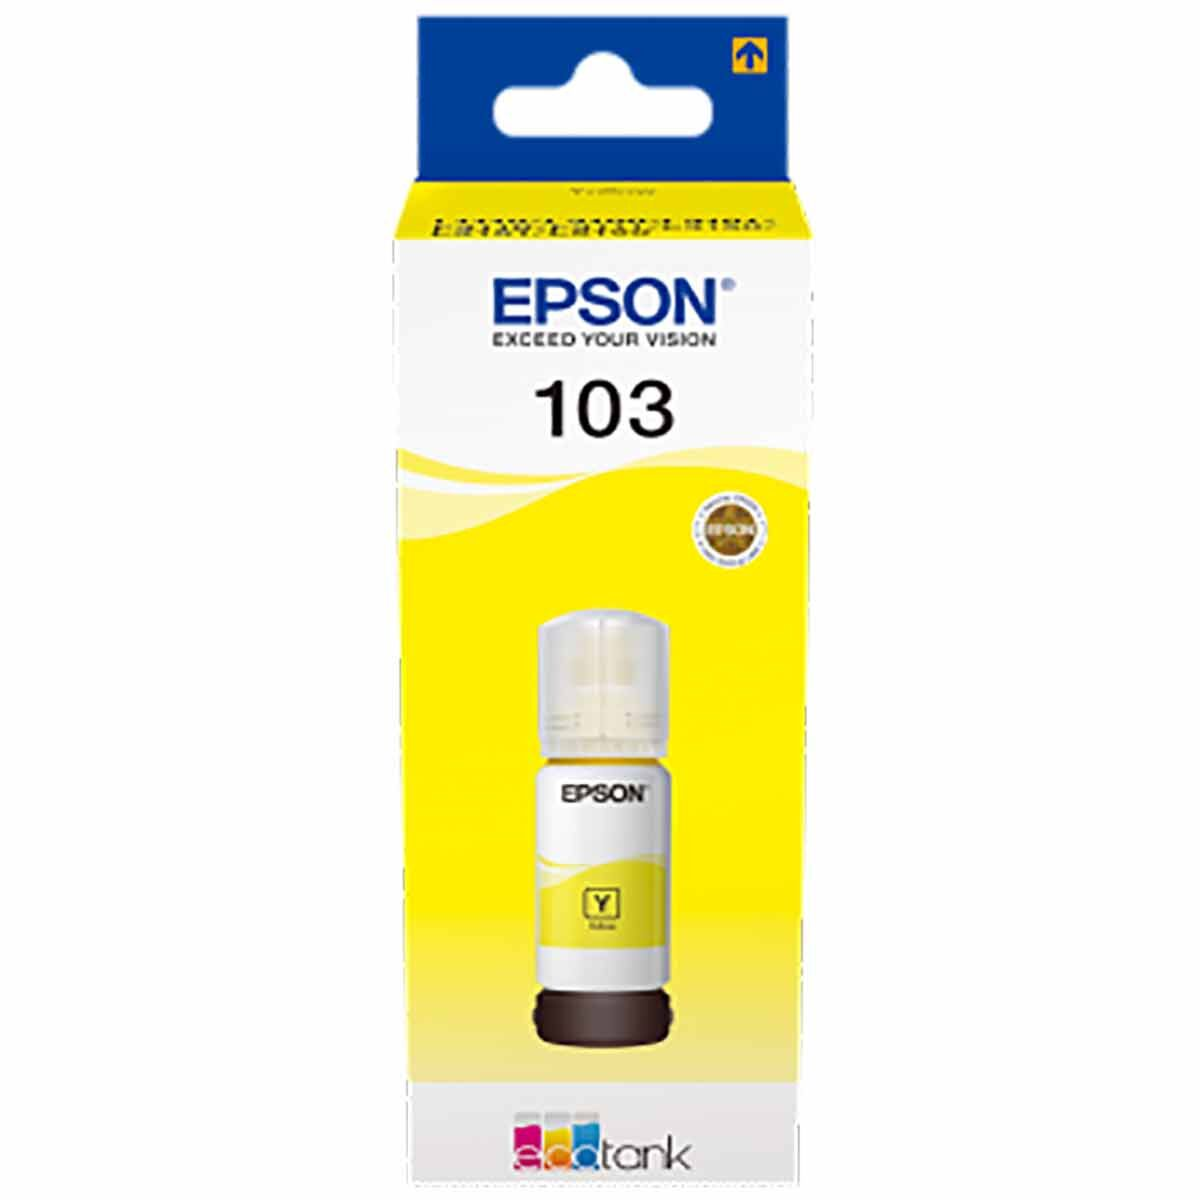 Epson 103 Colour Ink Bottle Yellow